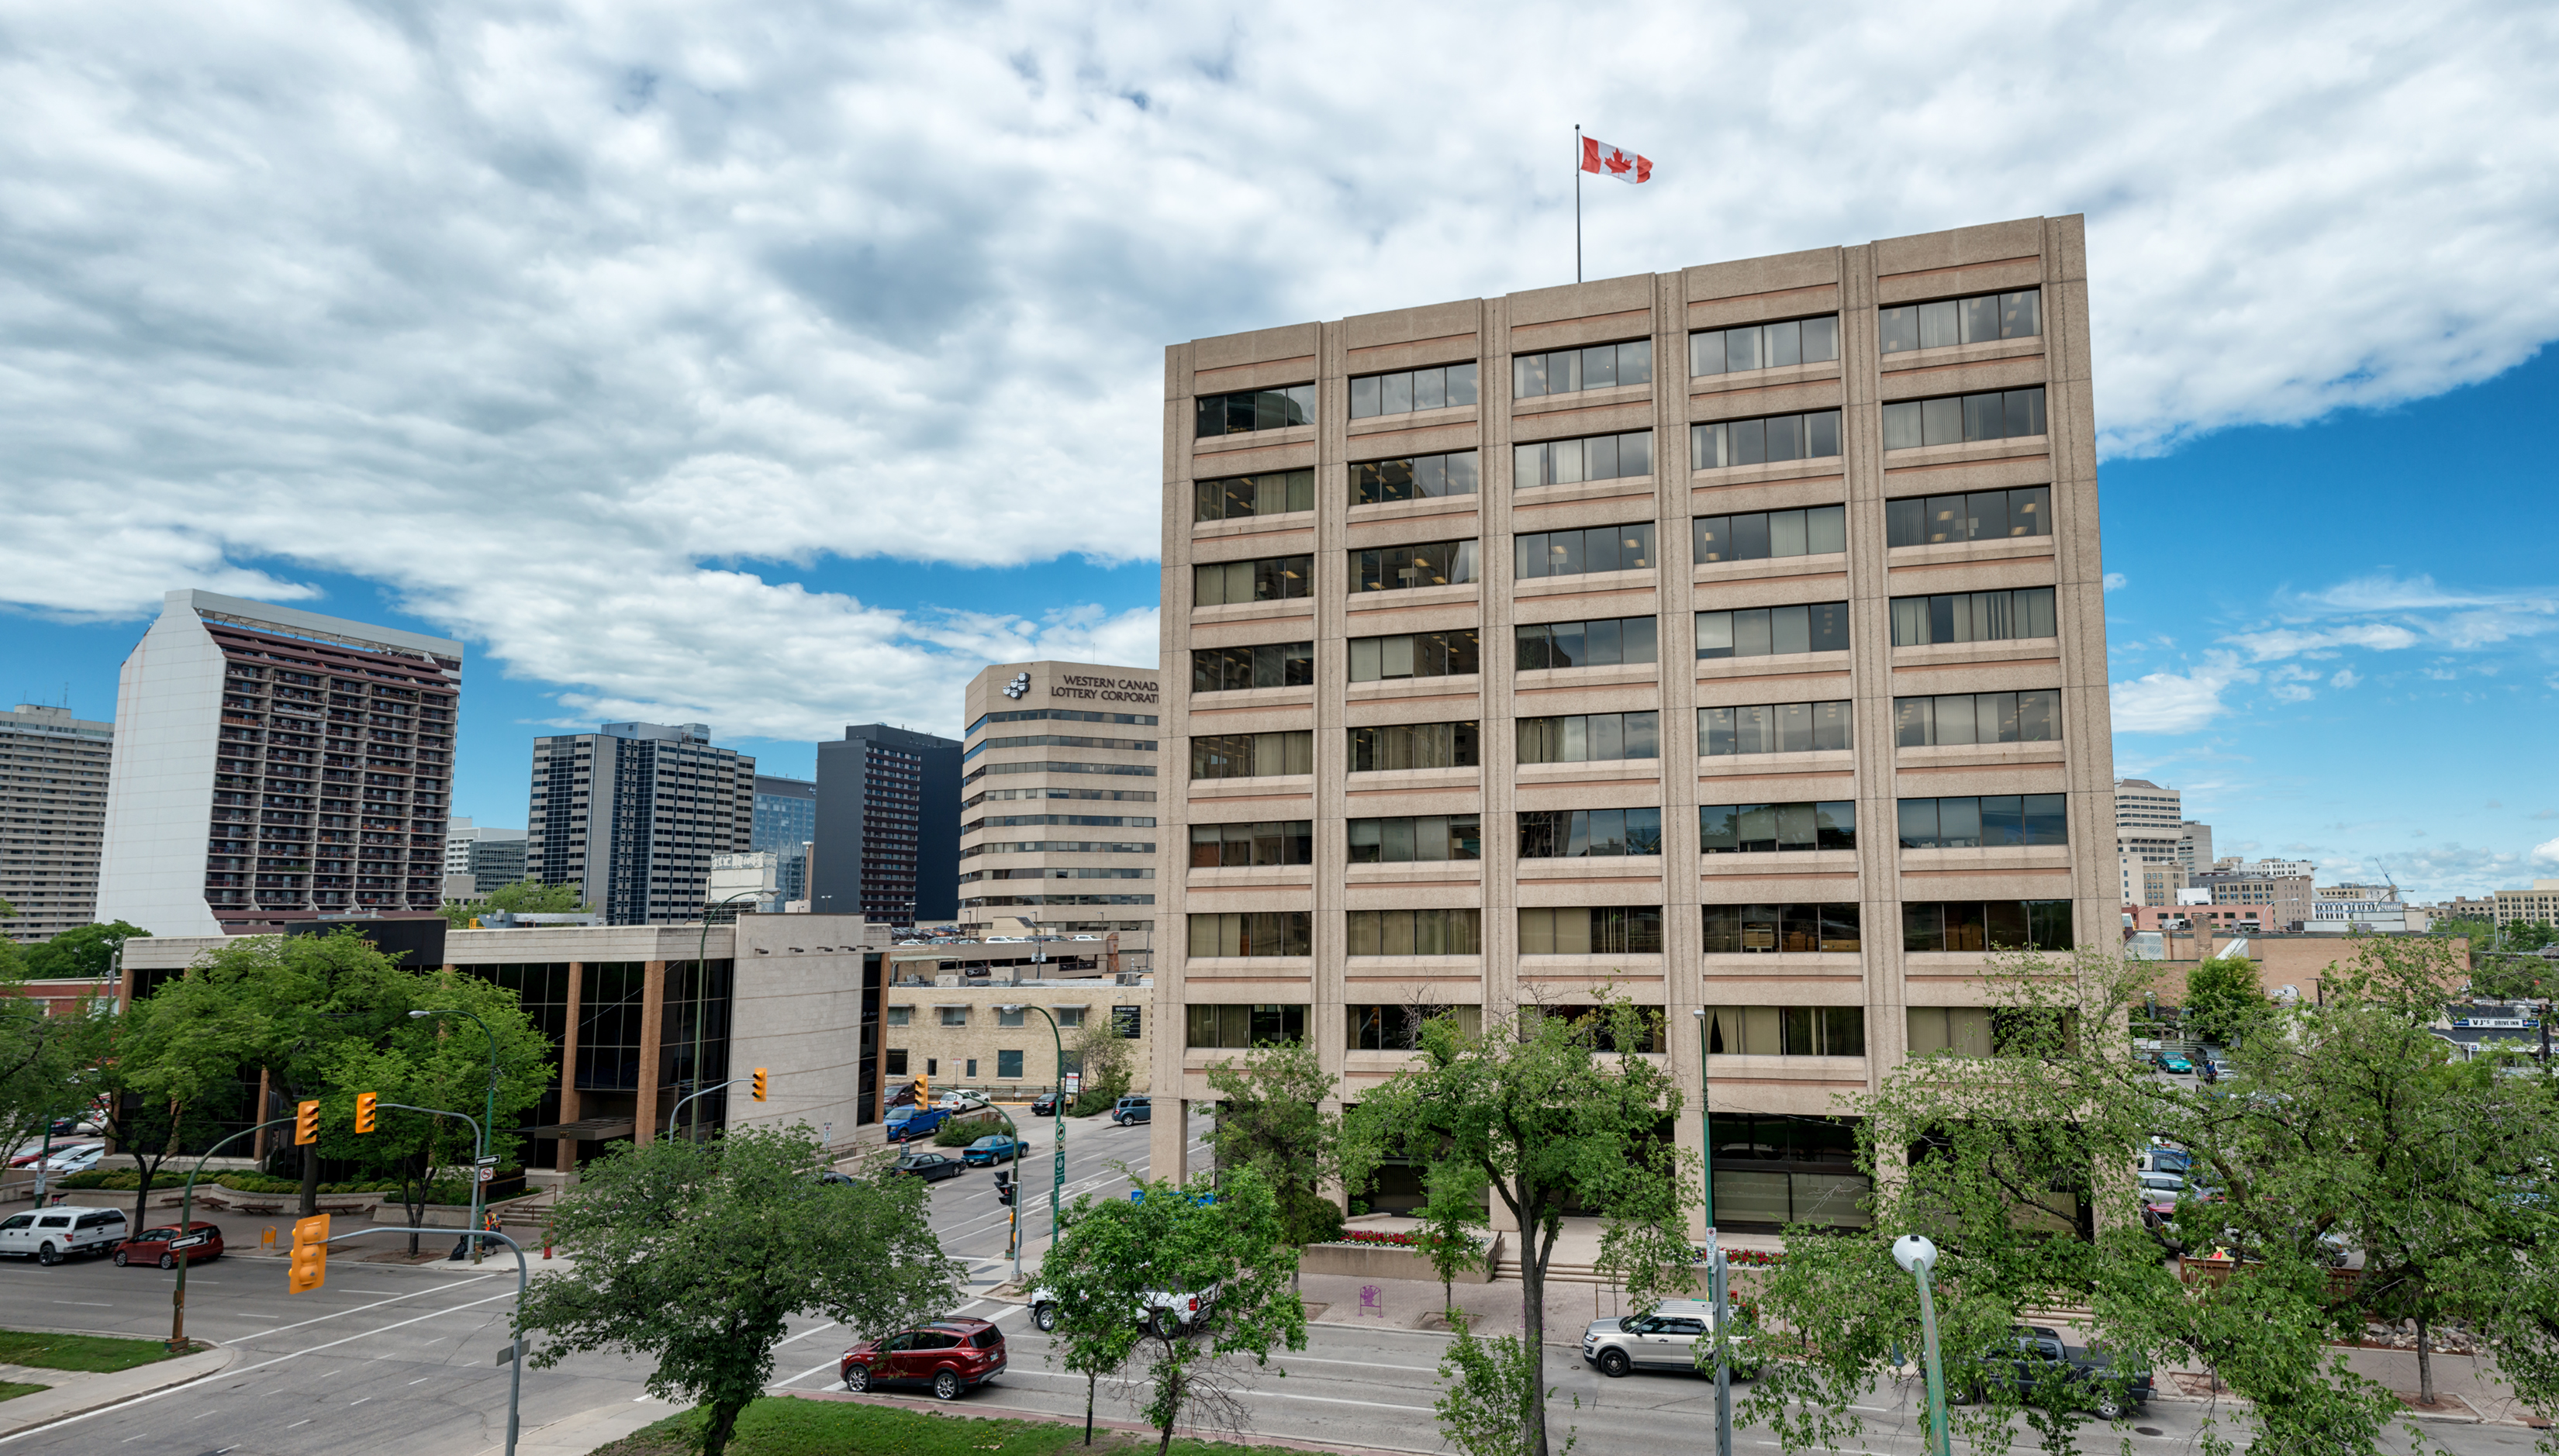 Wawanesa Mutual Insurance Company Executive Office, Winnipeg MB